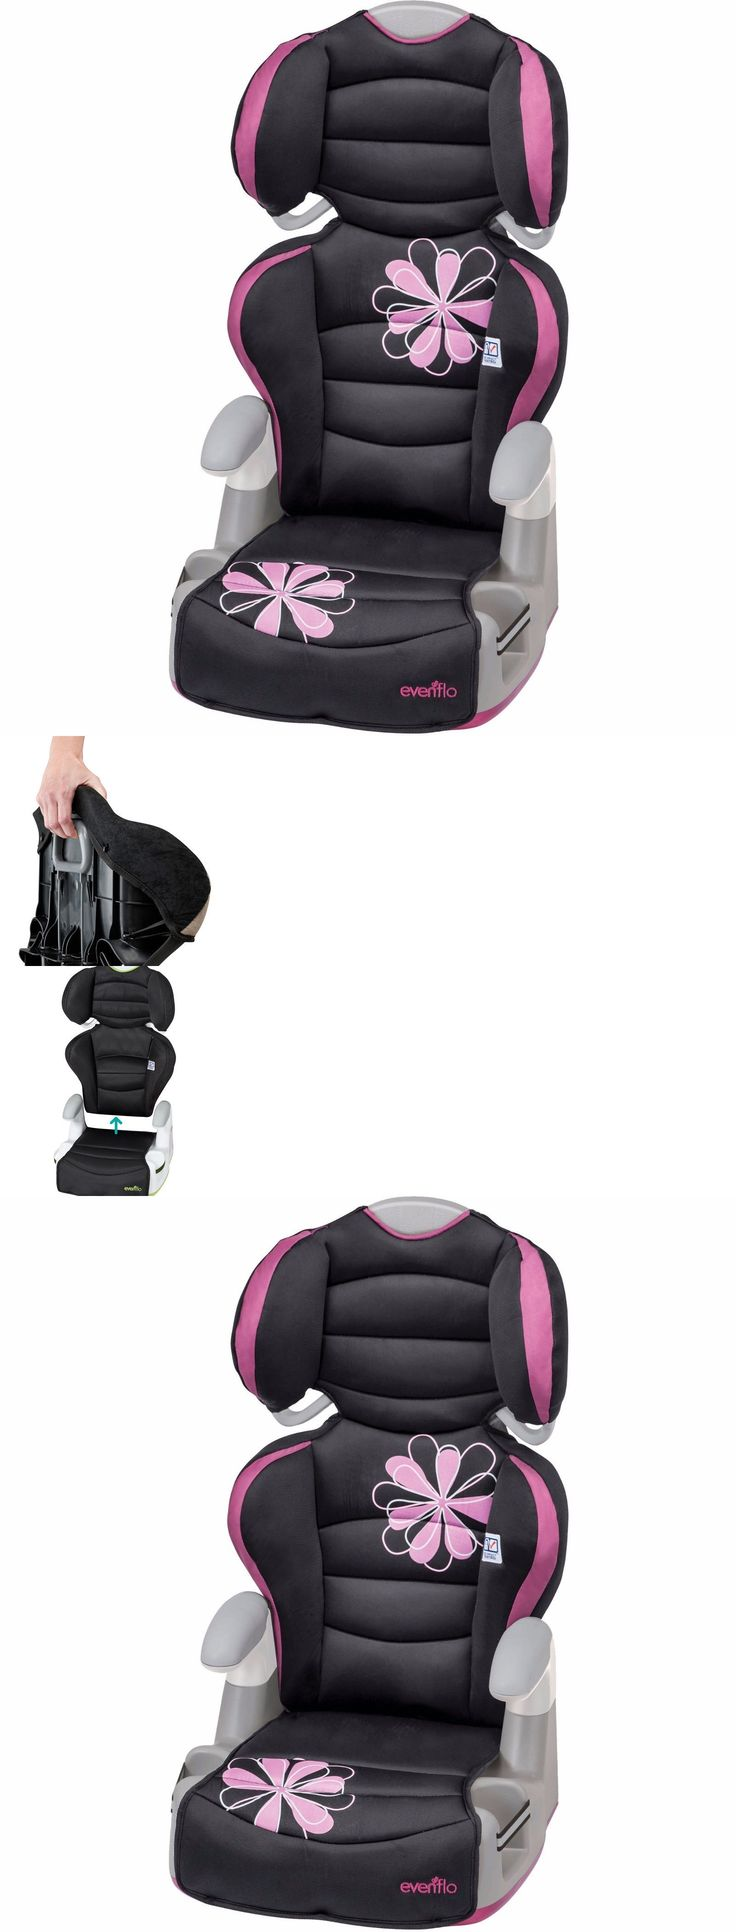 Car Safety Seats 66692: Kids Booster Car Seat Child Chair Portable Removable Washable -> BUY IT NOW ONLY: $45.03 on eBay!